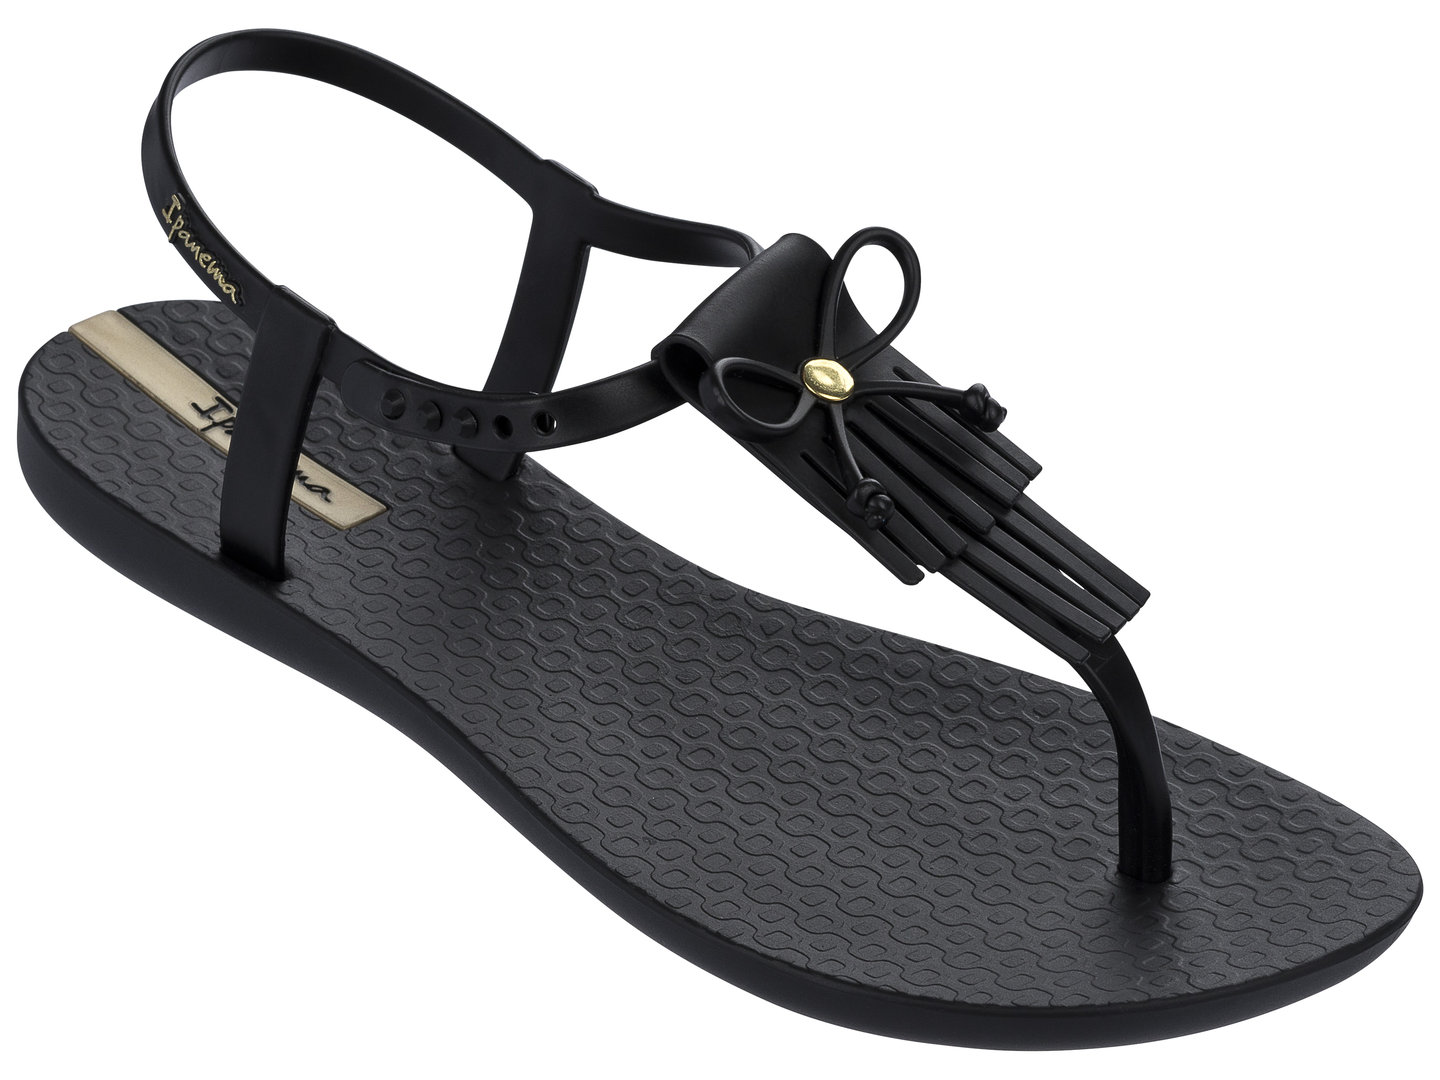 7721bd6c553935 Ipanema Charm sandals - black - Was Schickes